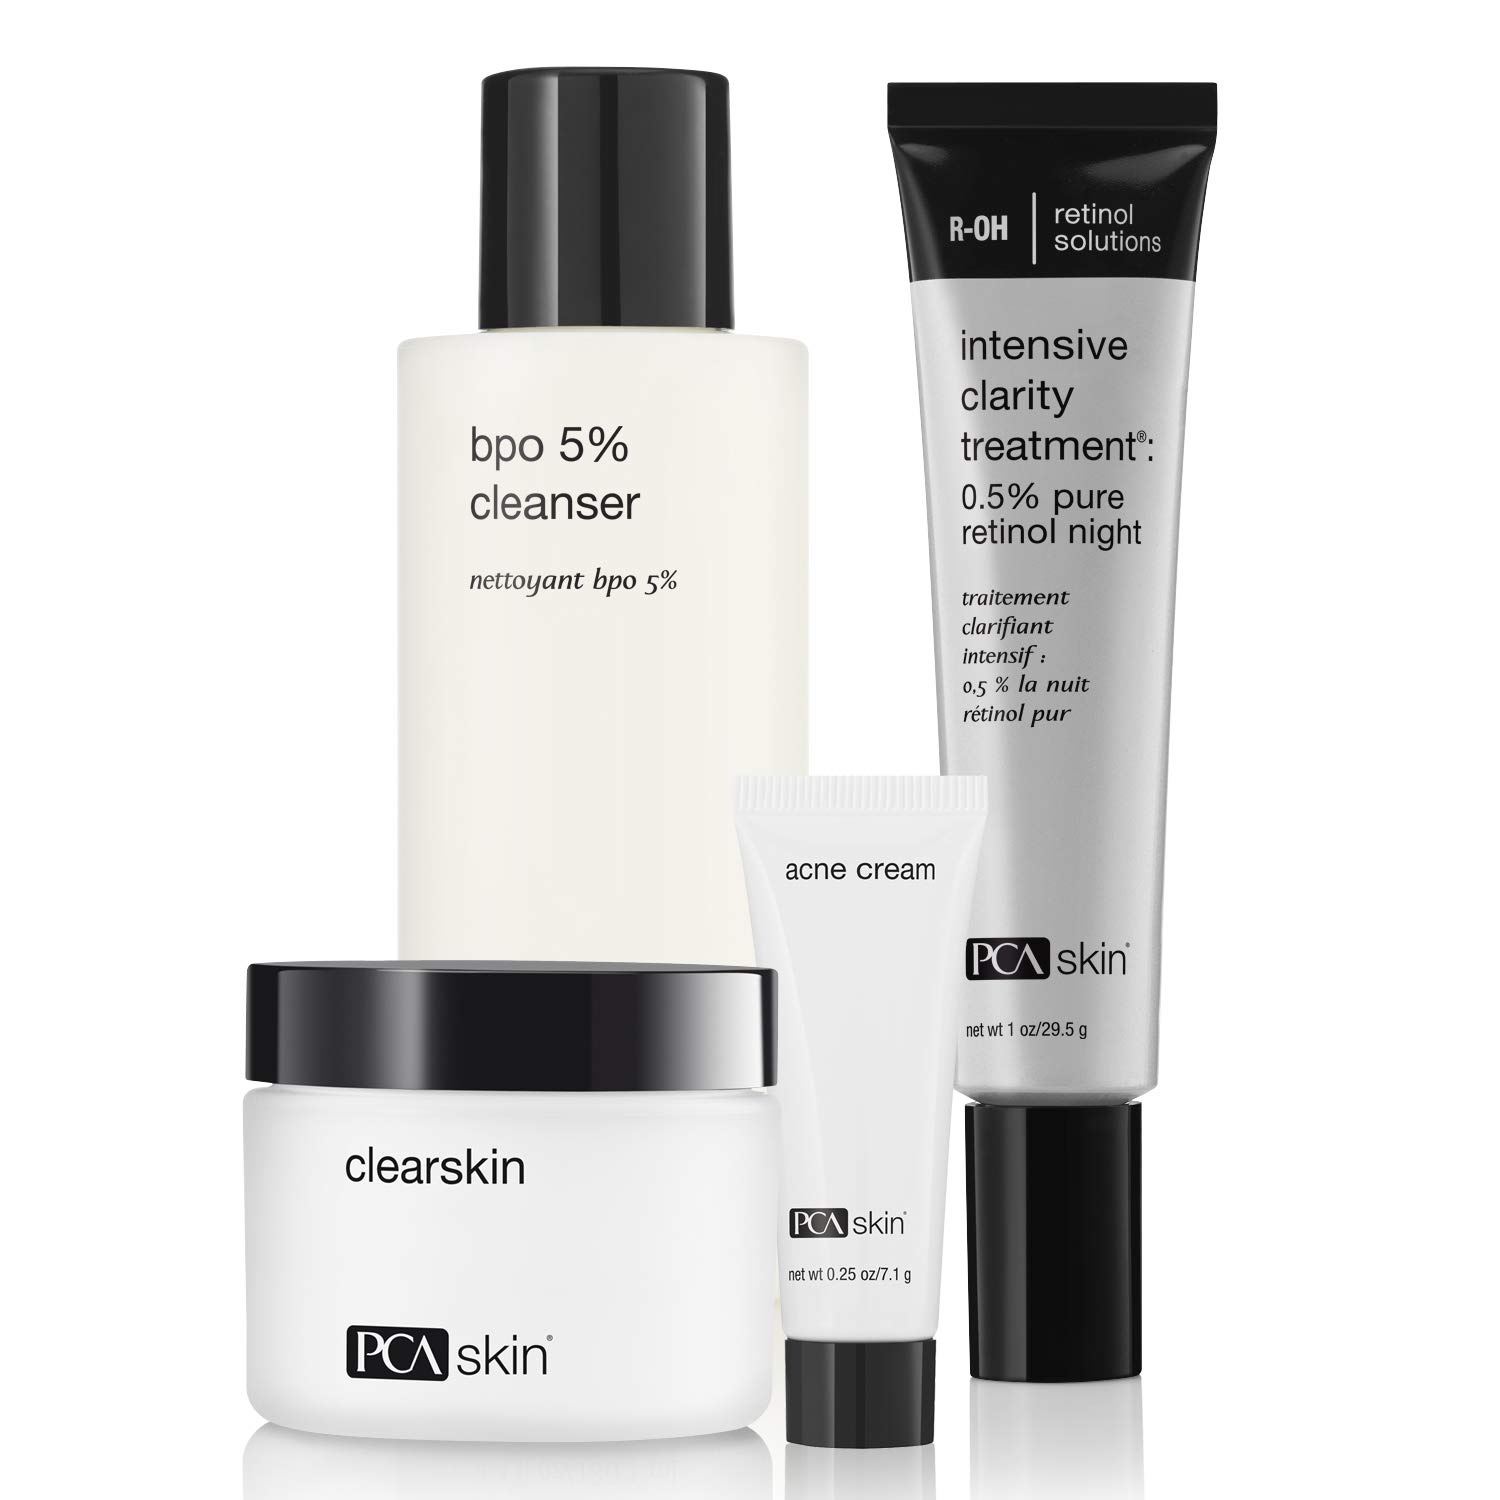 PCA Skin The Acne Control Regimen Kit